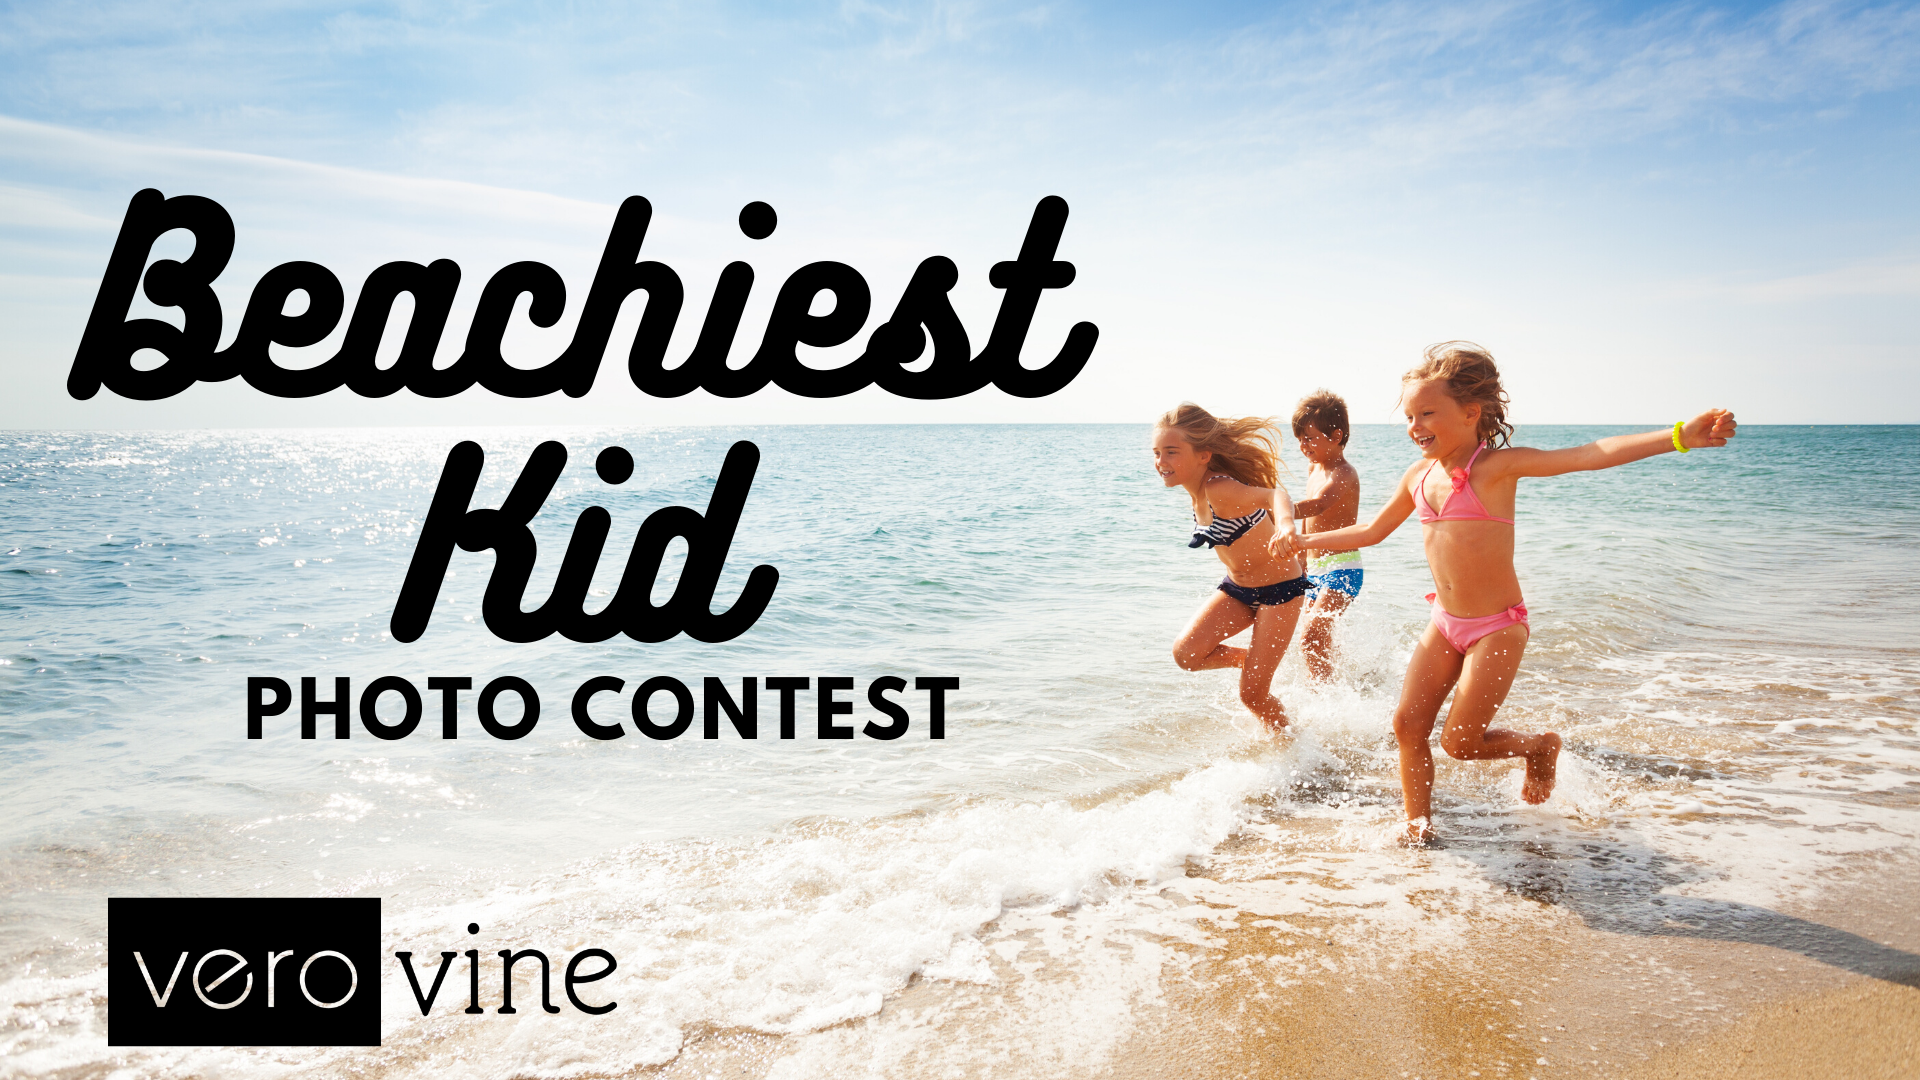 Beachiest Kid Photo Contest 2020